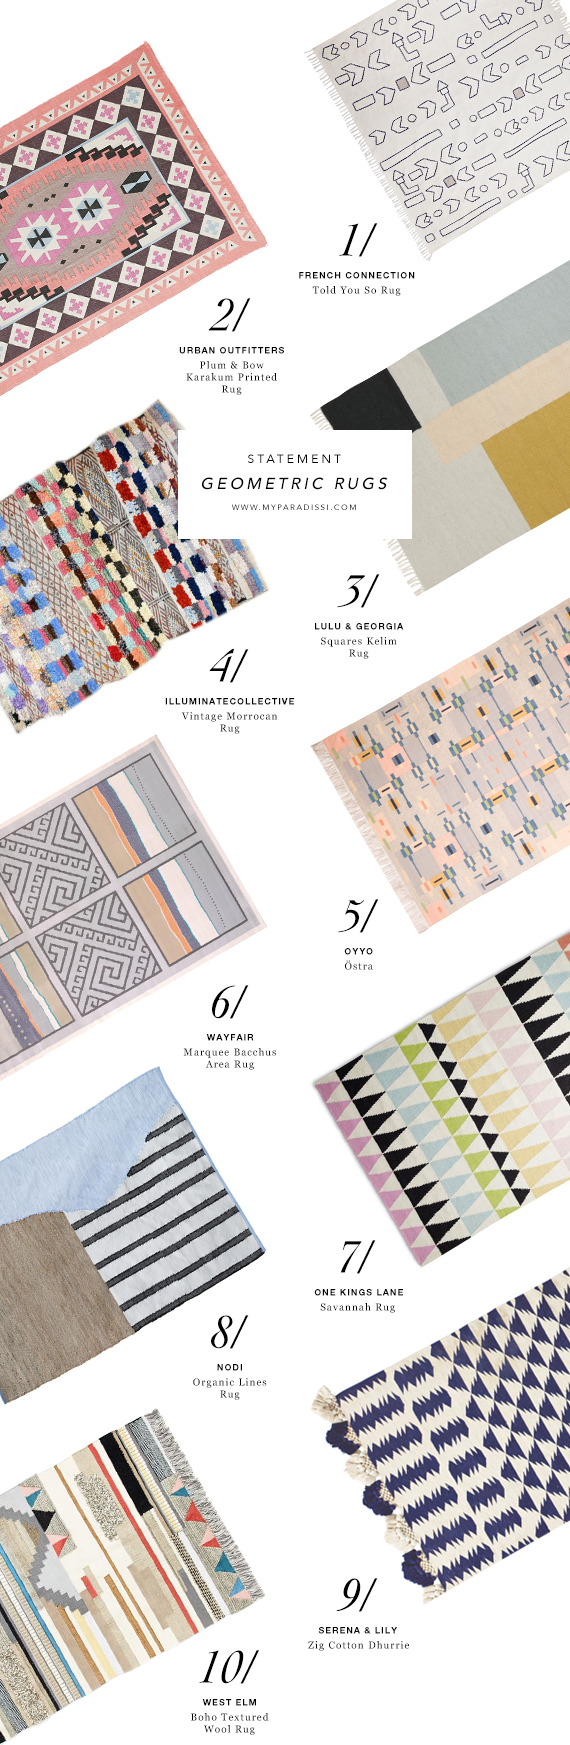 10 geometric rugs that WOW | My Paradissi